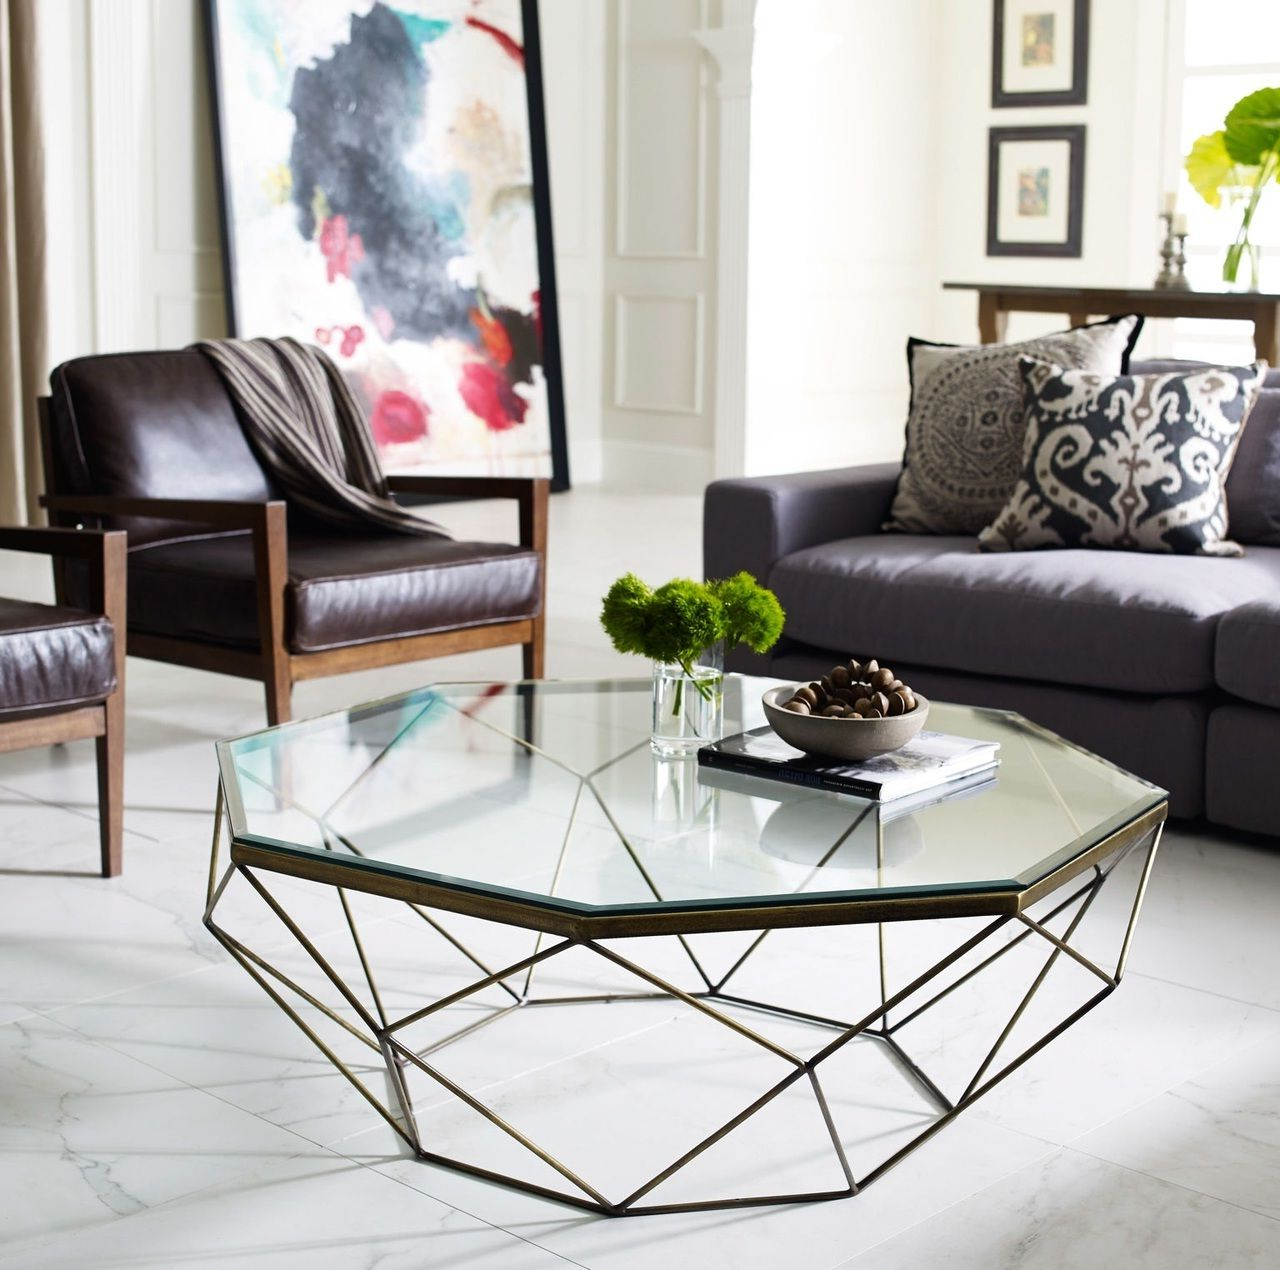 Geometric Antique Brass Coffee Table With Glass Top Regarding Trendy Silver Orchid Ipsen Round Coffee Tables With X Base (View 15 of 20)